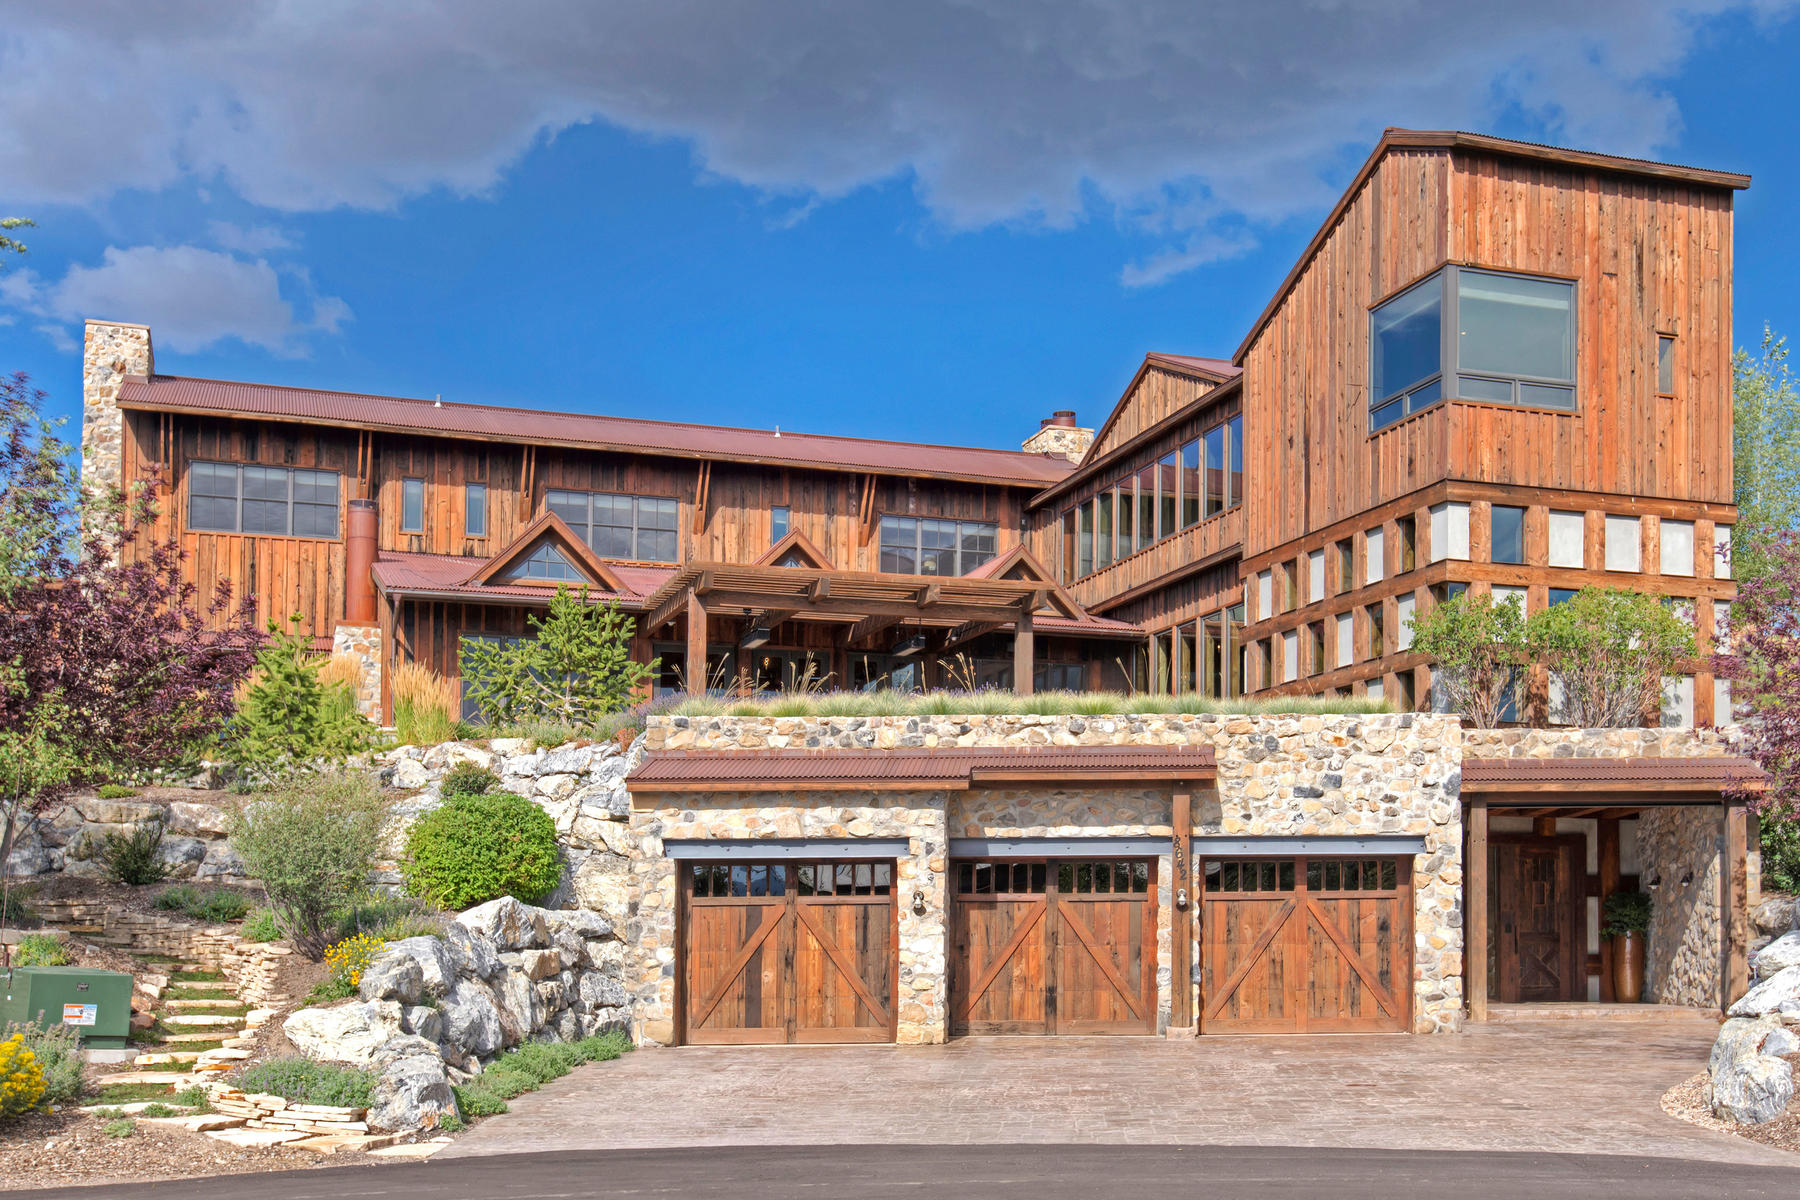 Single Family Home for Sale at Fabulous Unique Promontory Property With Great Views Located in Wapiti Canyon 8642 N Sunset Cir Park City, Utah 84098 United States